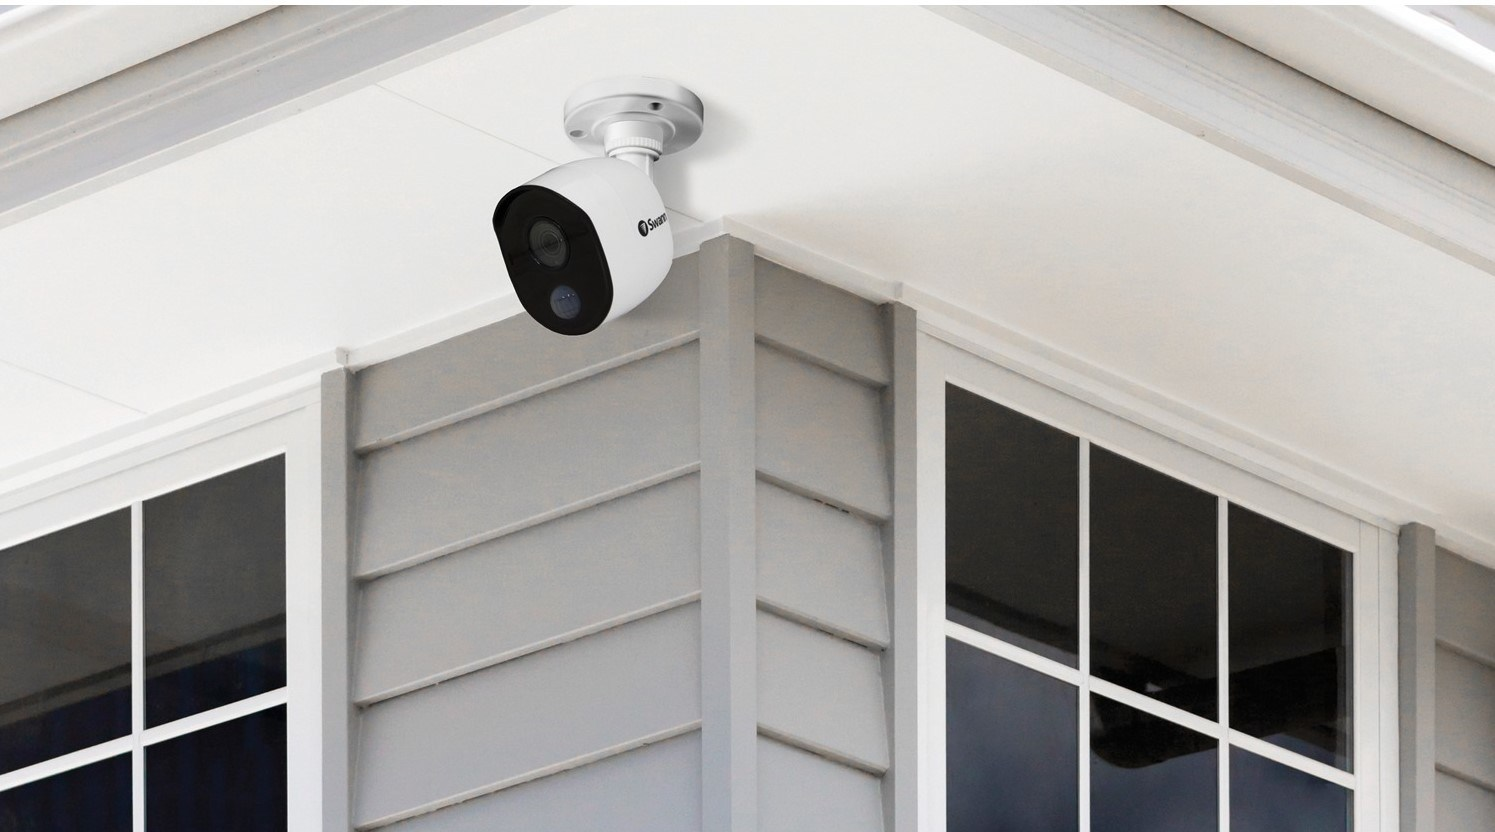 Best Outdoor Security Camera System To Catch A Burglar